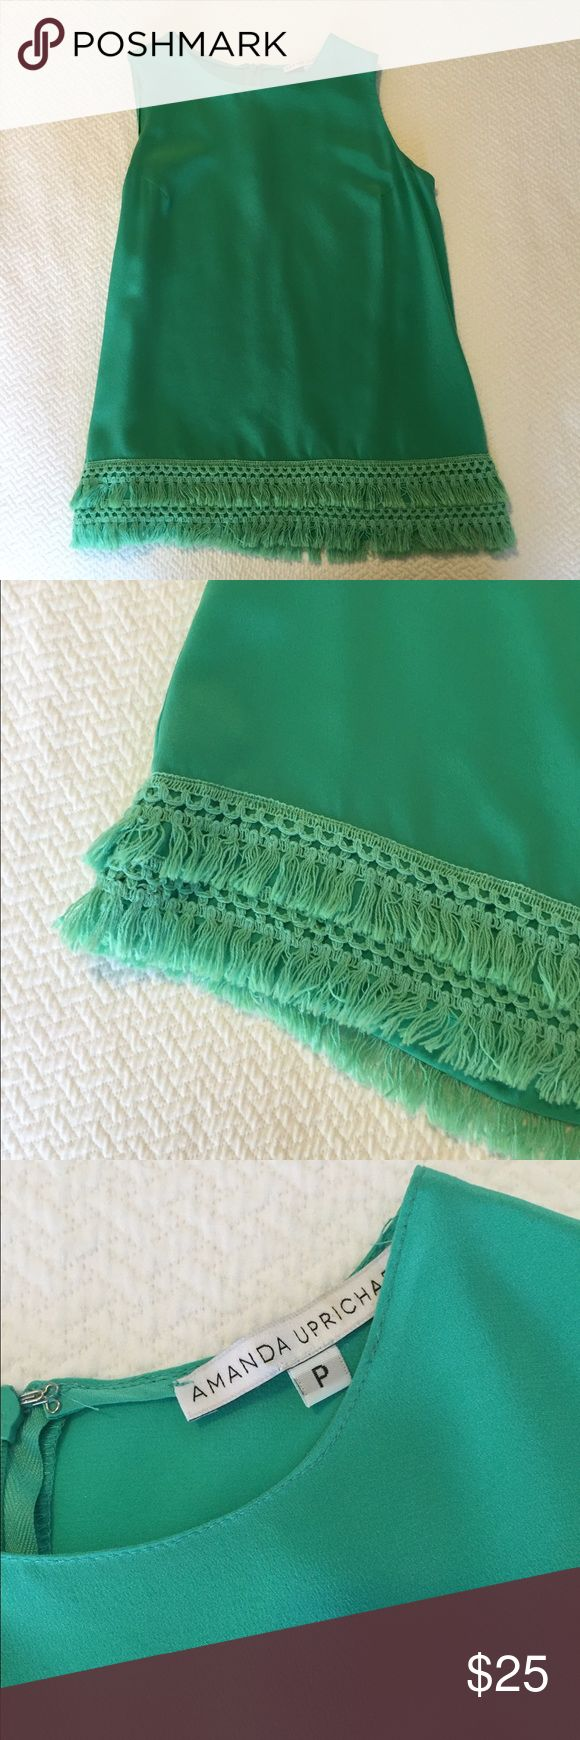 Amanda Uprichard silk aqua top with fringe bottom Excellent condition. Worn twice. Size P. Fits 00. Cute double flatter of fringe around the bottom. Super cute with white jeans! Hidden back zipper. Amanda Uprichard Tops Blouses